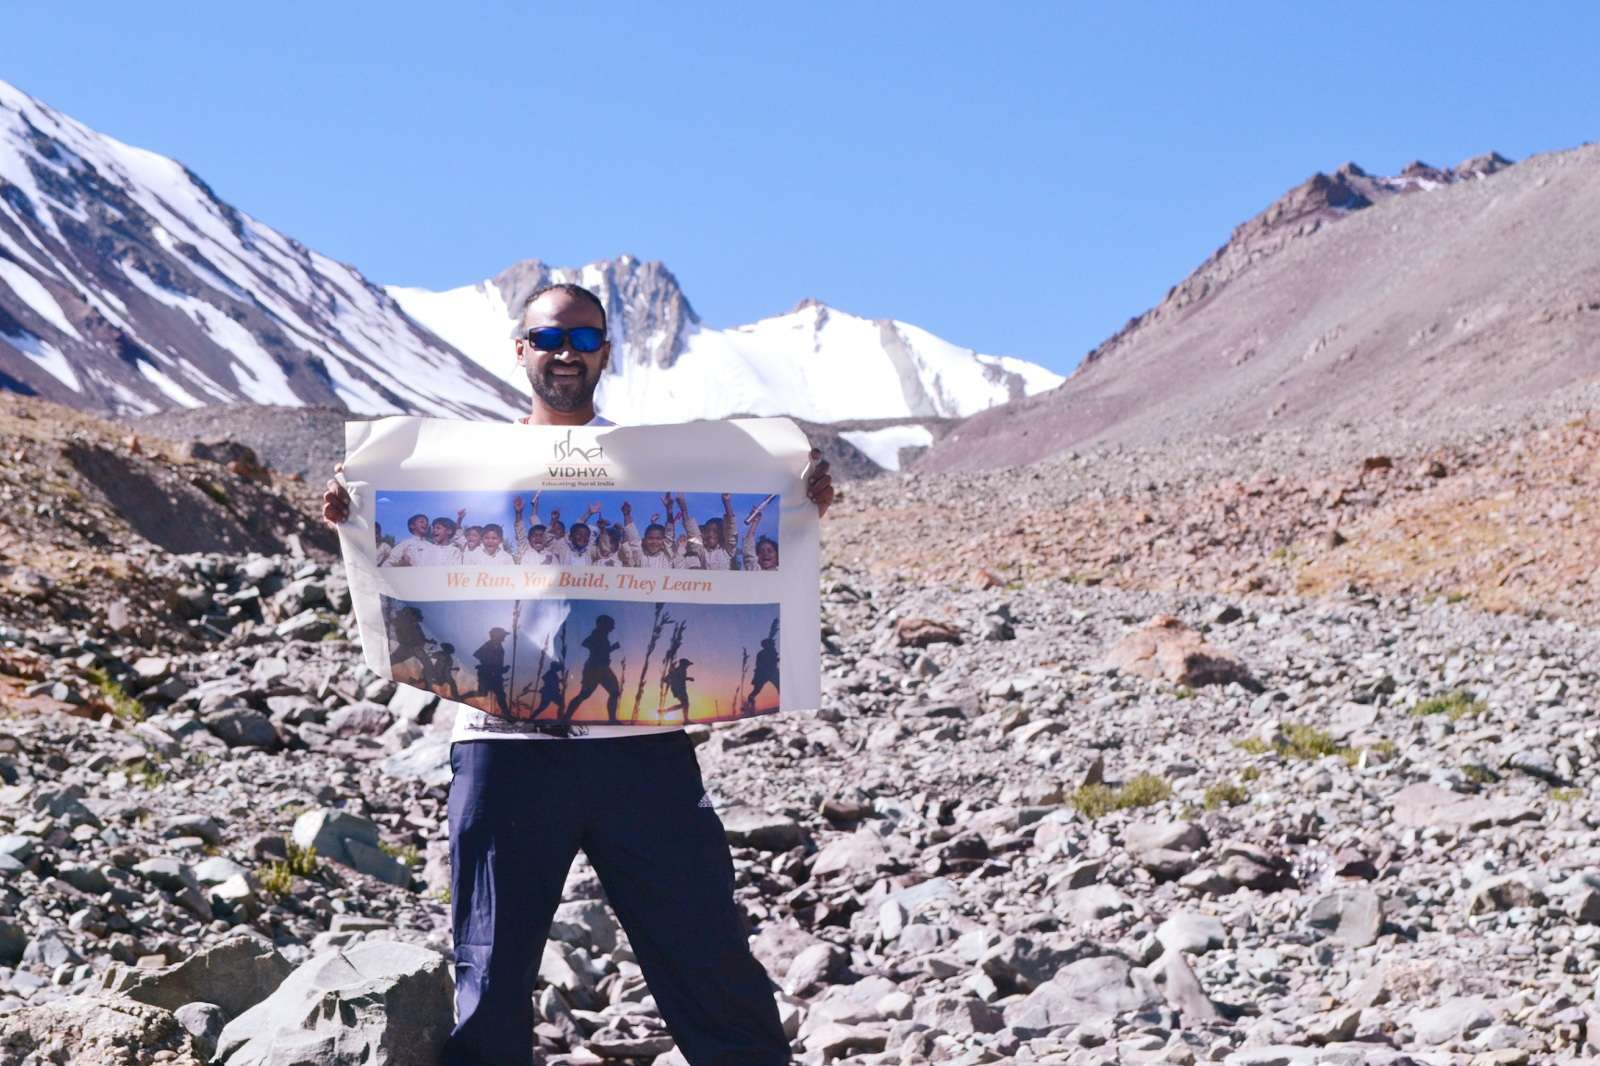 72 kms@18000 feet: Running in the Himalayas to Educate Rural India